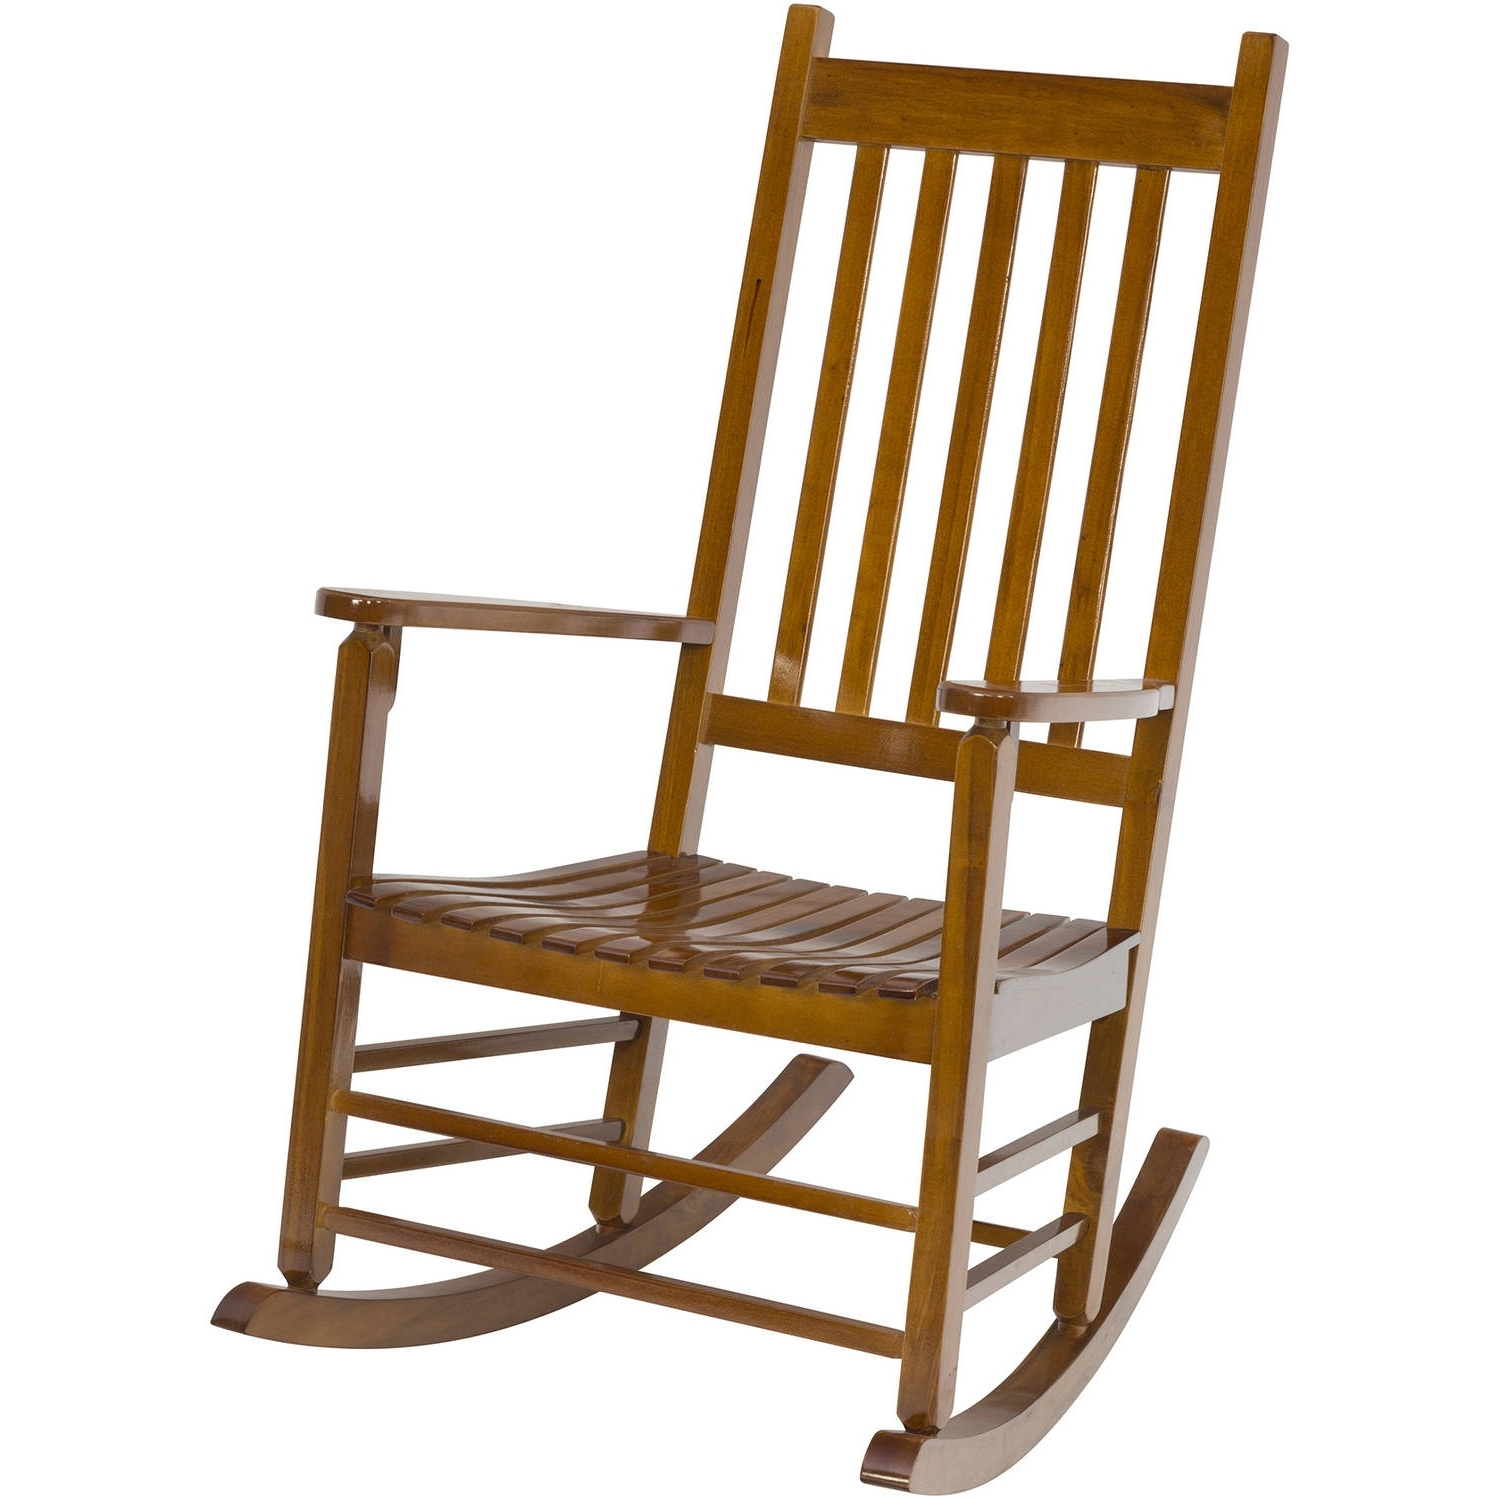 Rocking Chairs At Walmart Throughout Favorite Jack Post Knollwood Rocker With Wicker In Natural – Walmart (View 12 of 15)